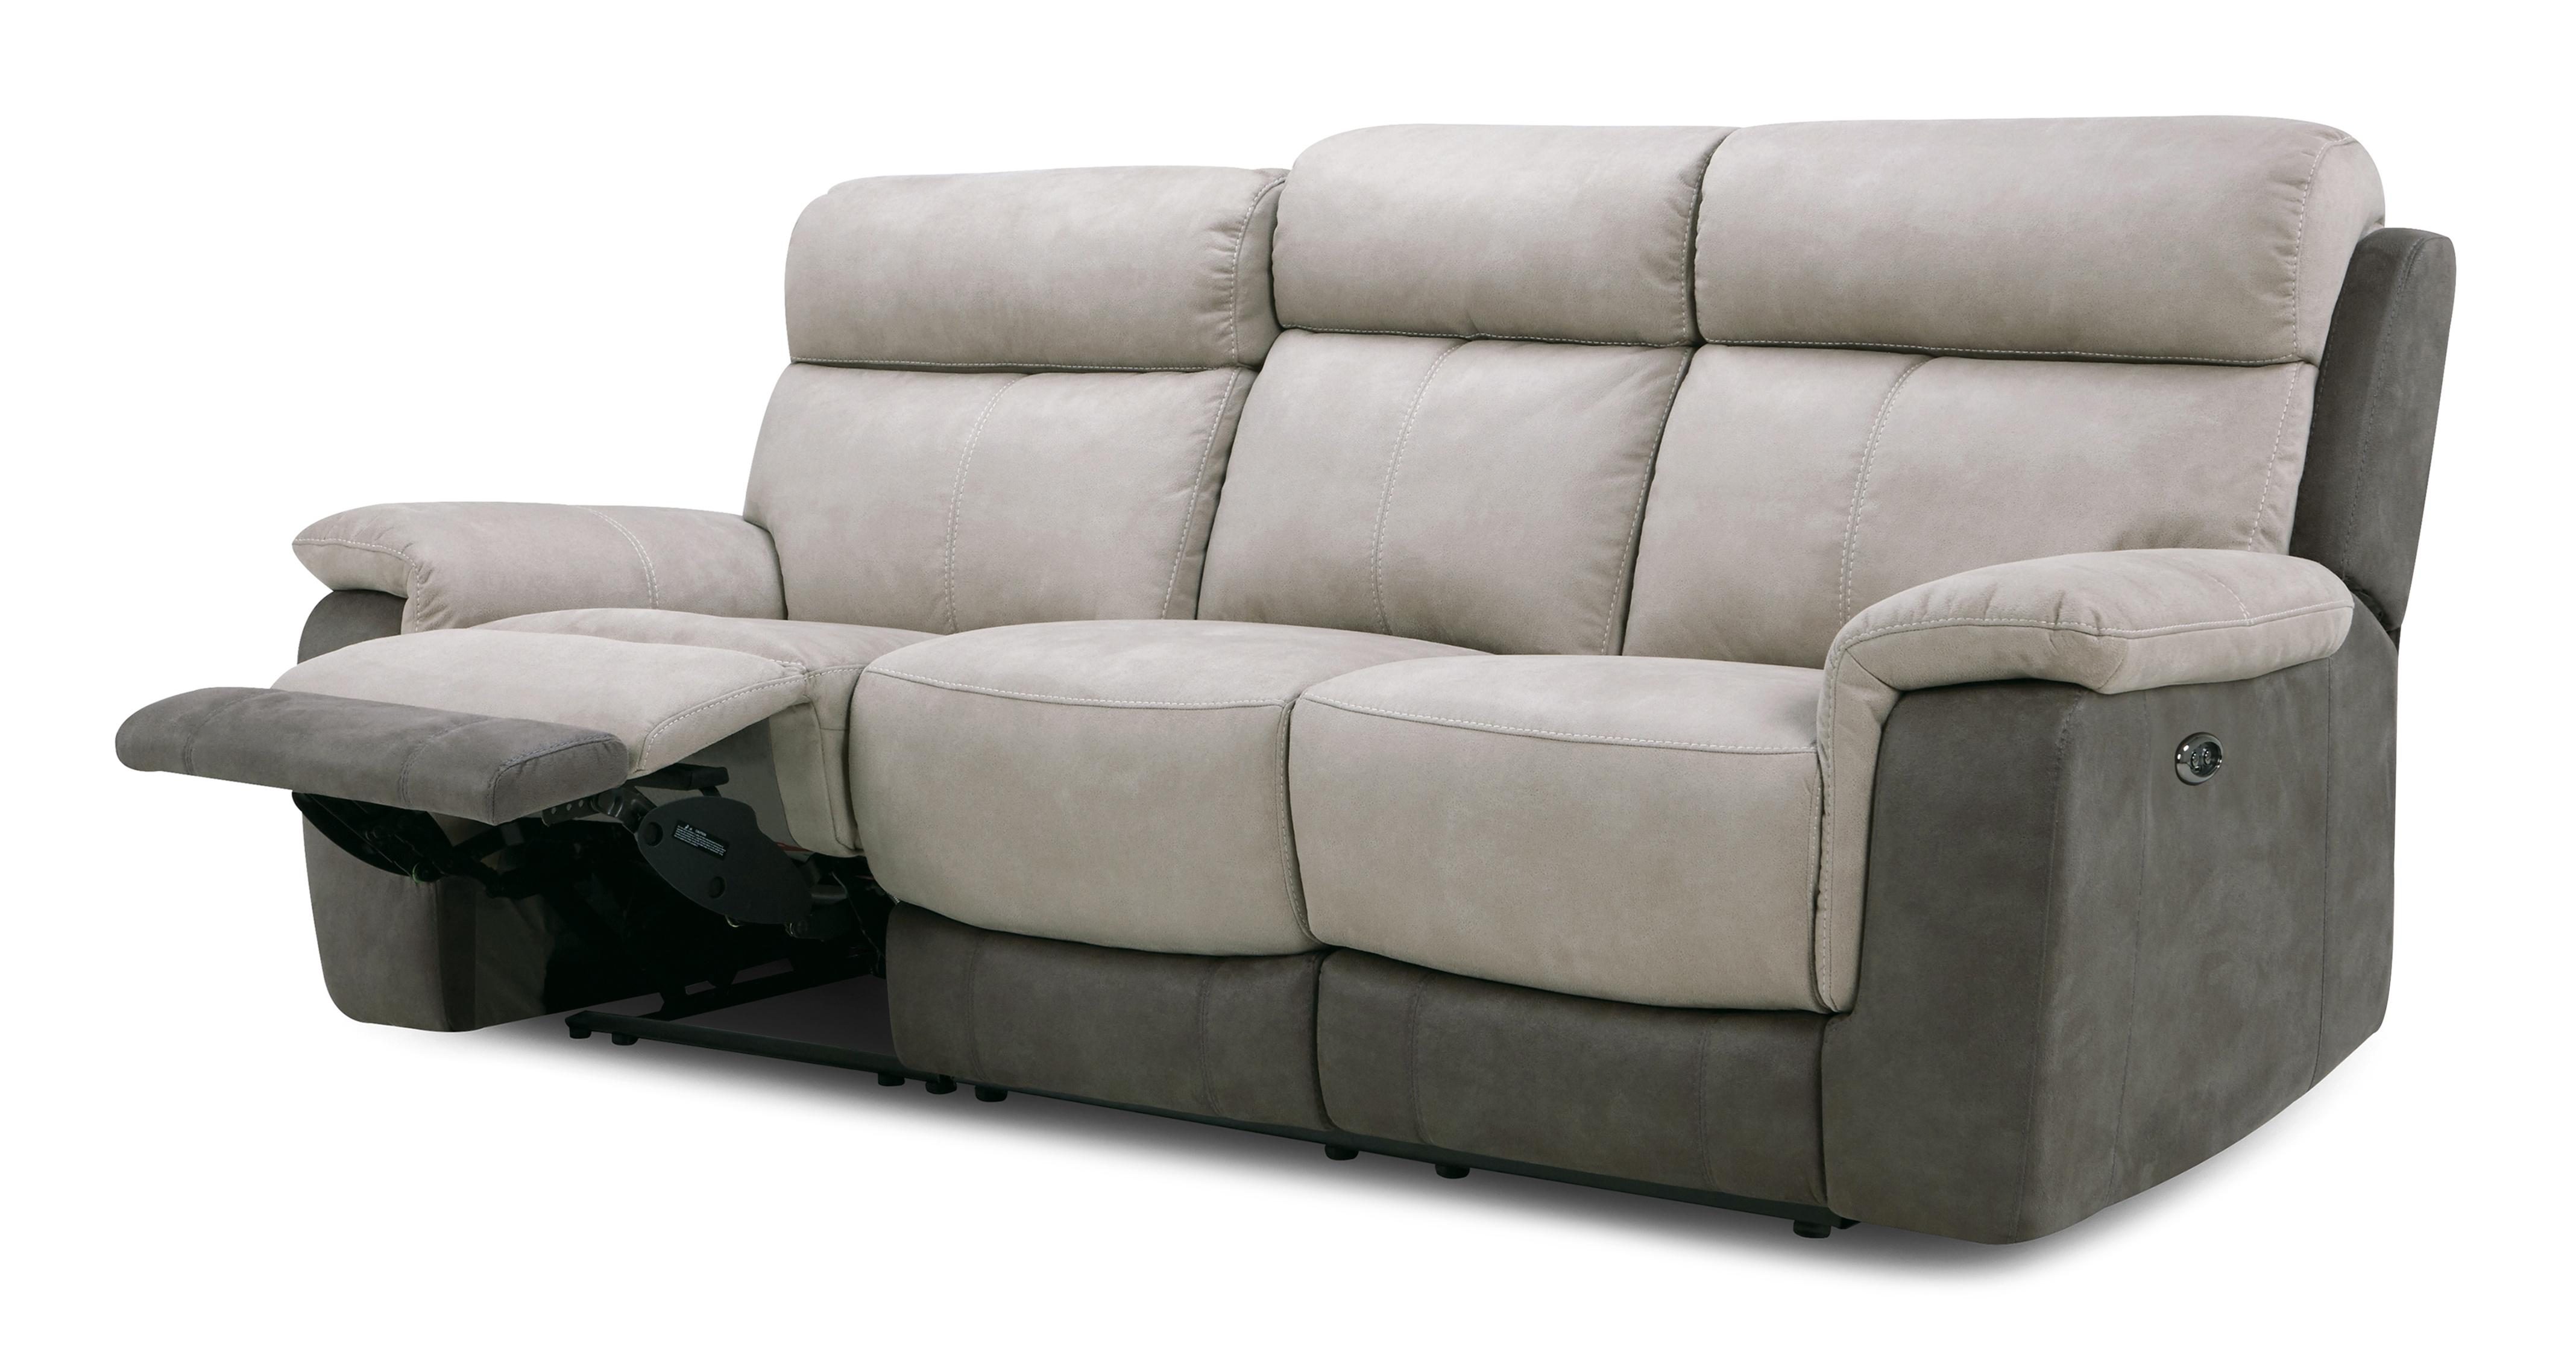 Sofa With Recliner Bingley 3 Seater Manual Recliner